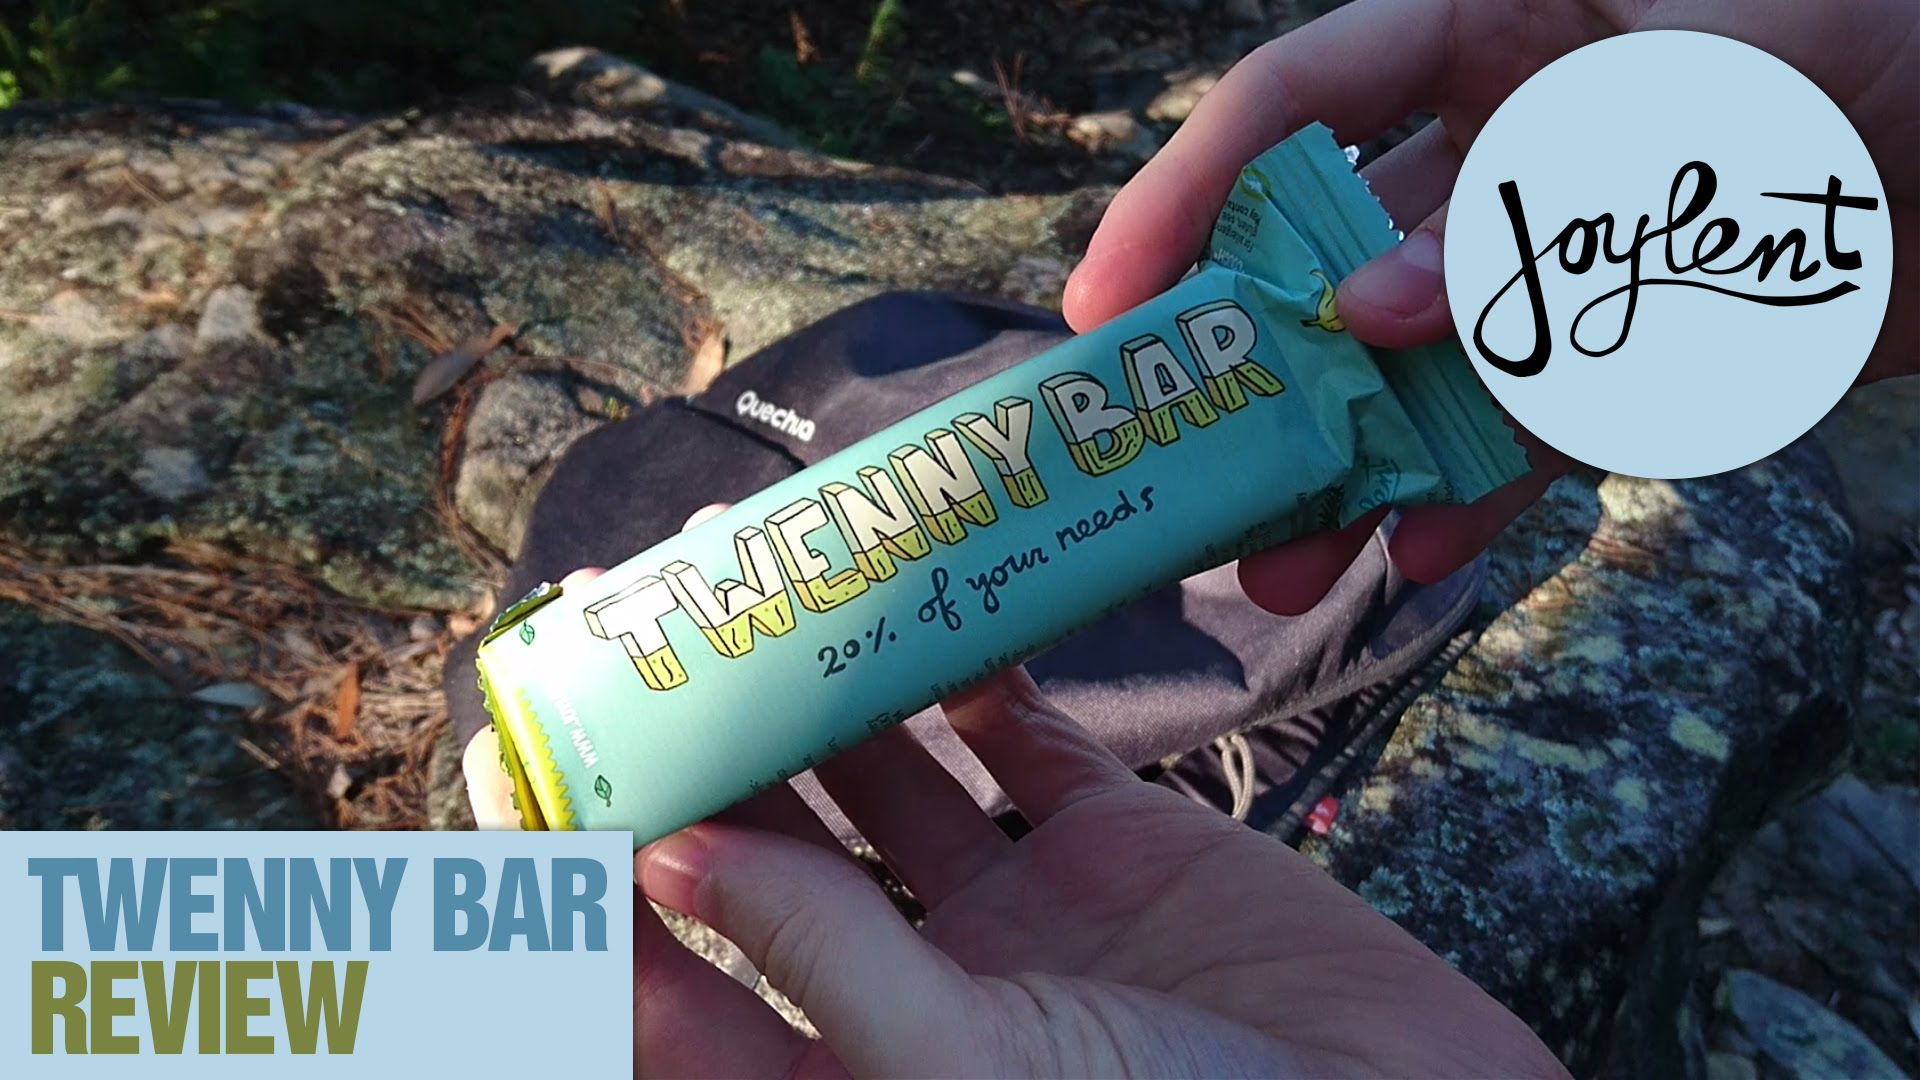 Joylent-Twenny-Bar-Review